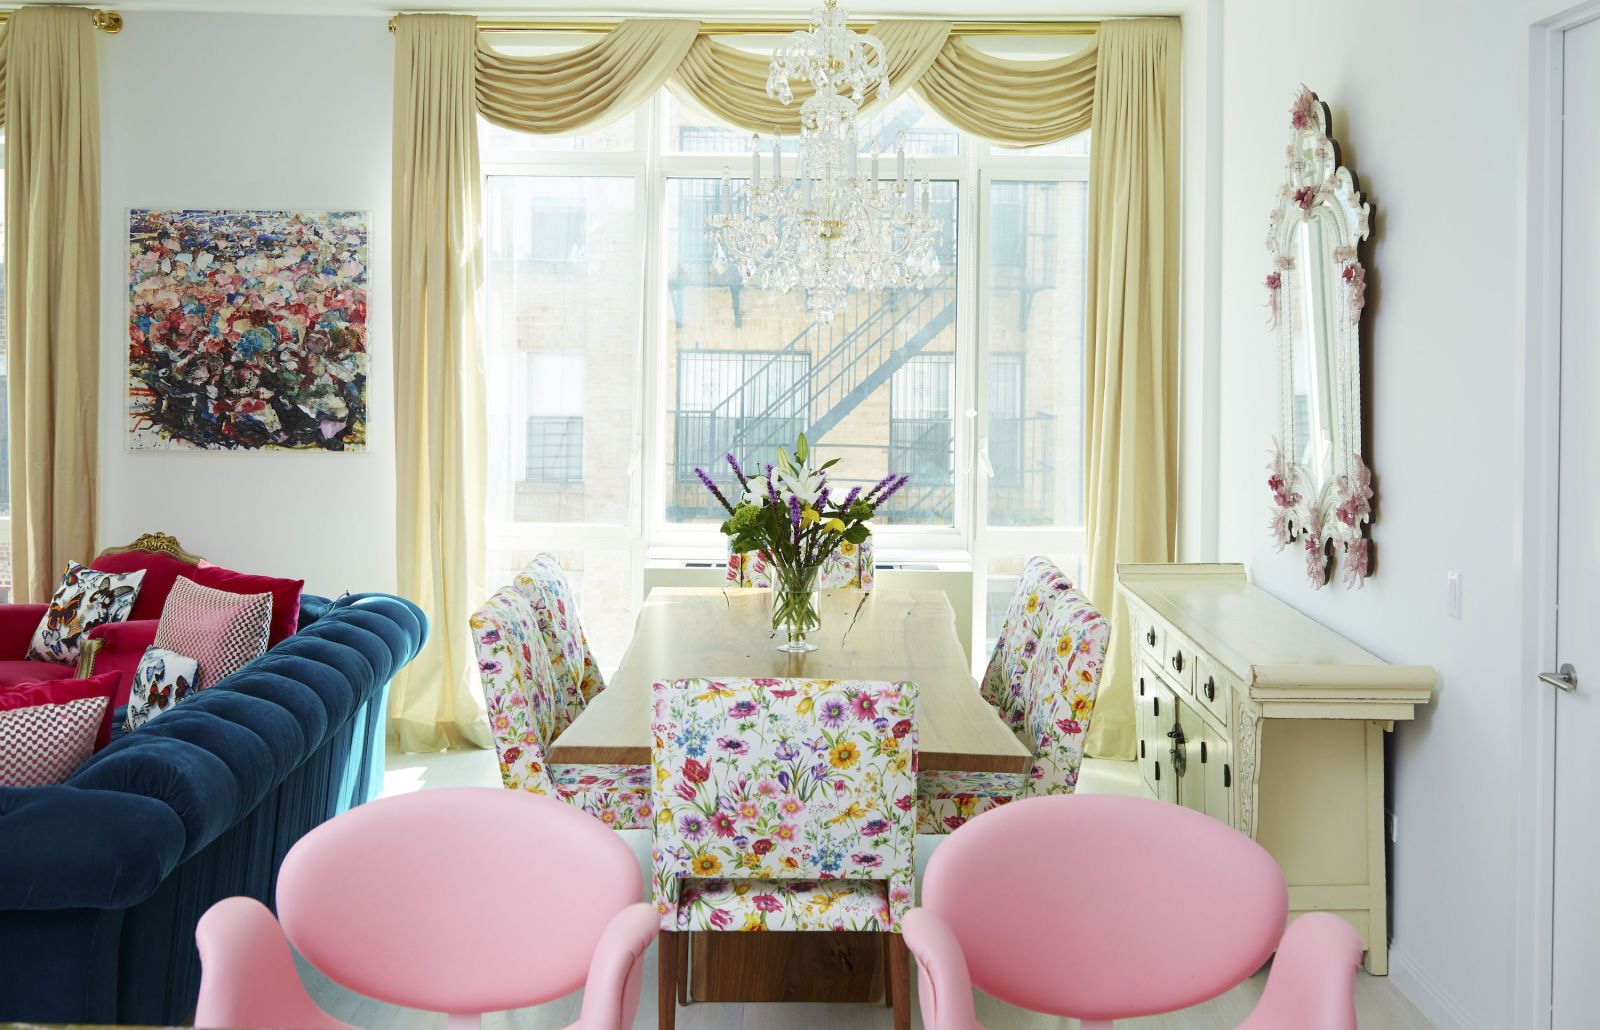 Window Coverings To Keep Heat Out 10 Important Things To Consider When Buying Curtains Beautiful